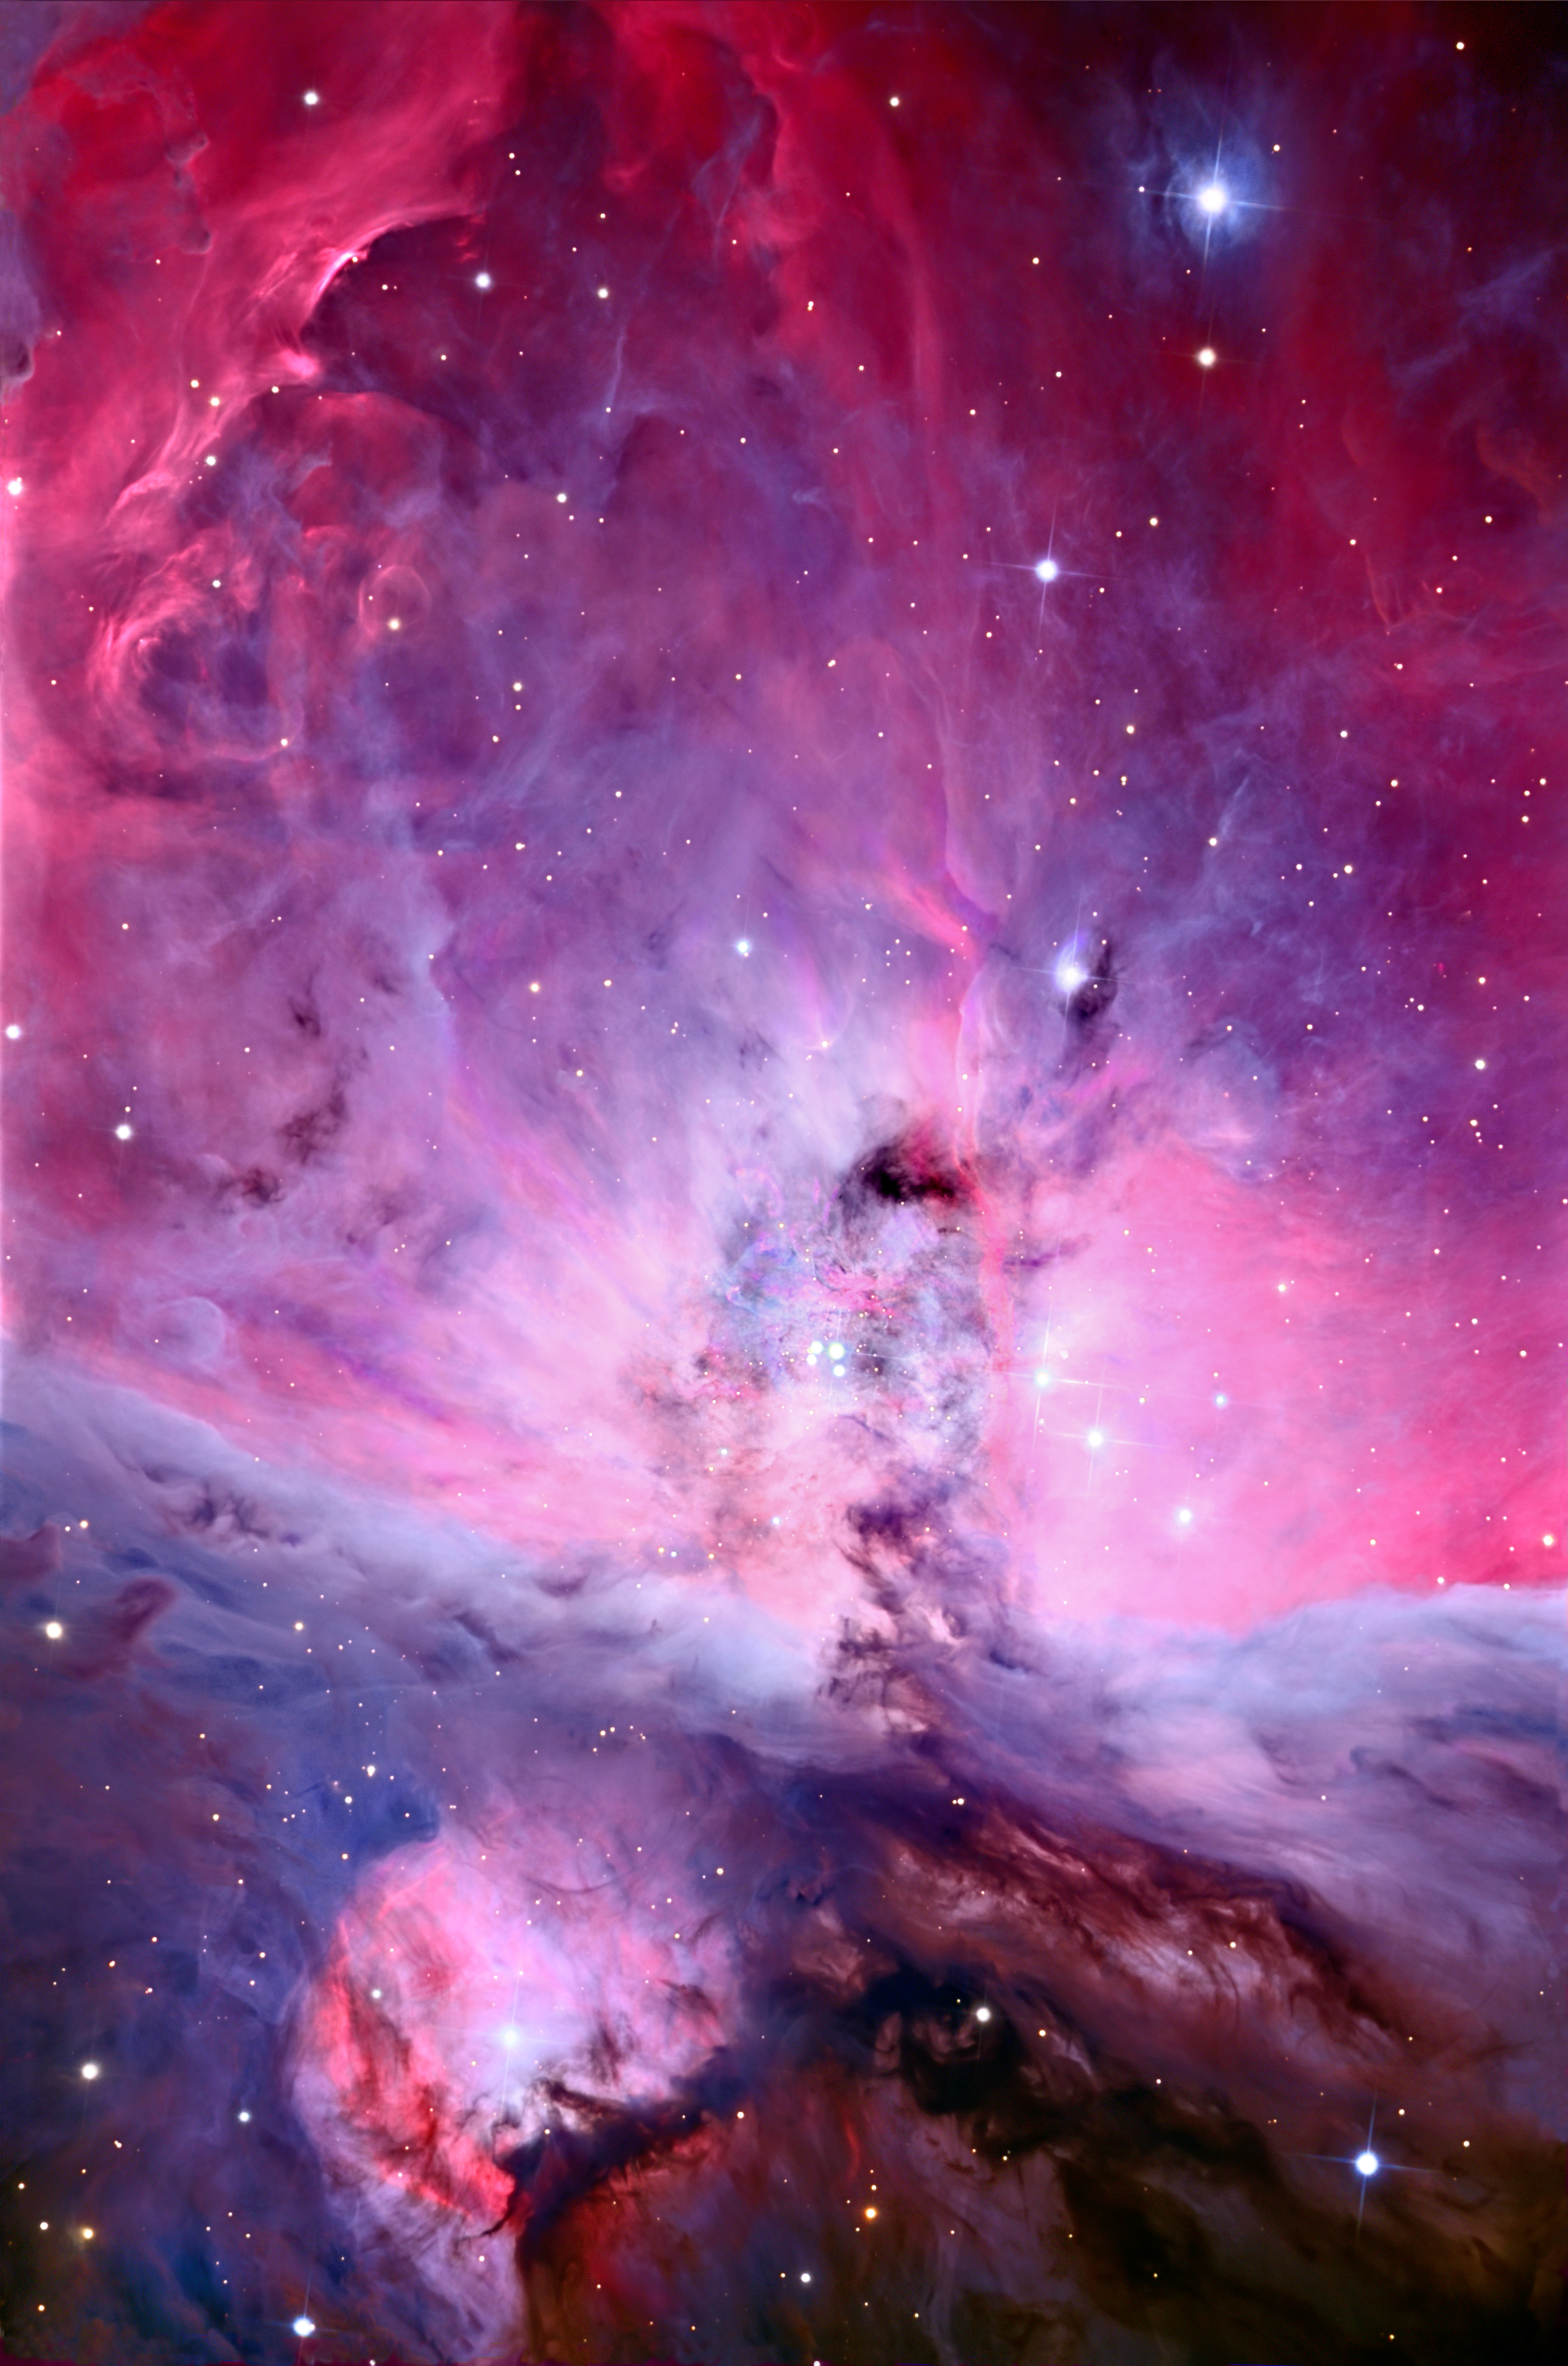 A photo of m42